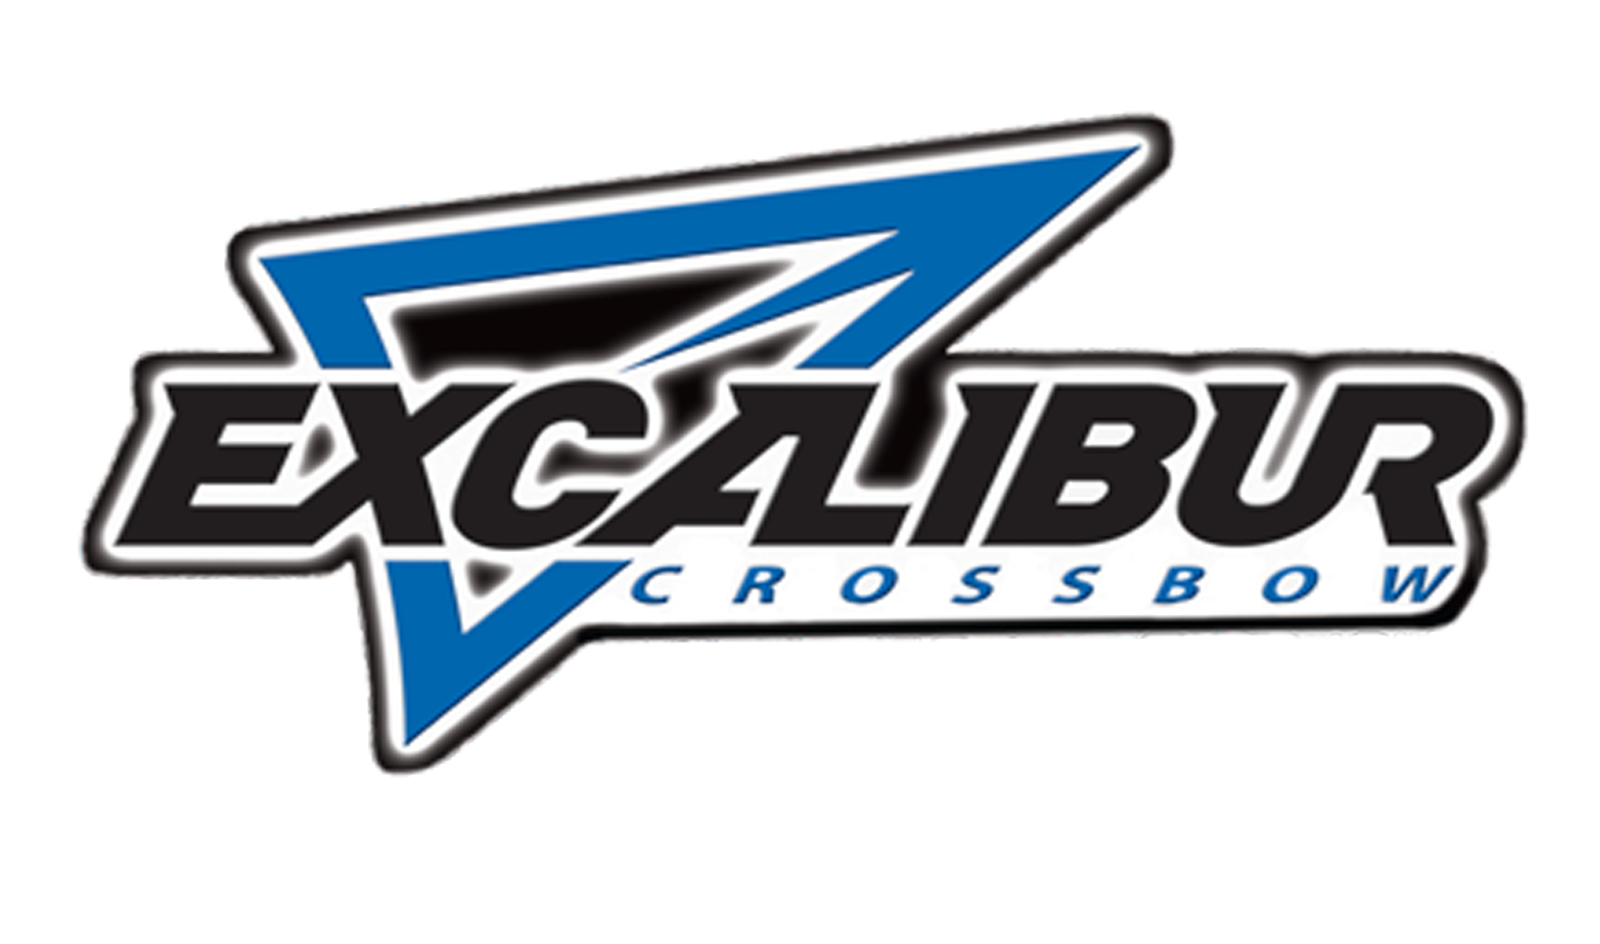 Excalibur crossbow